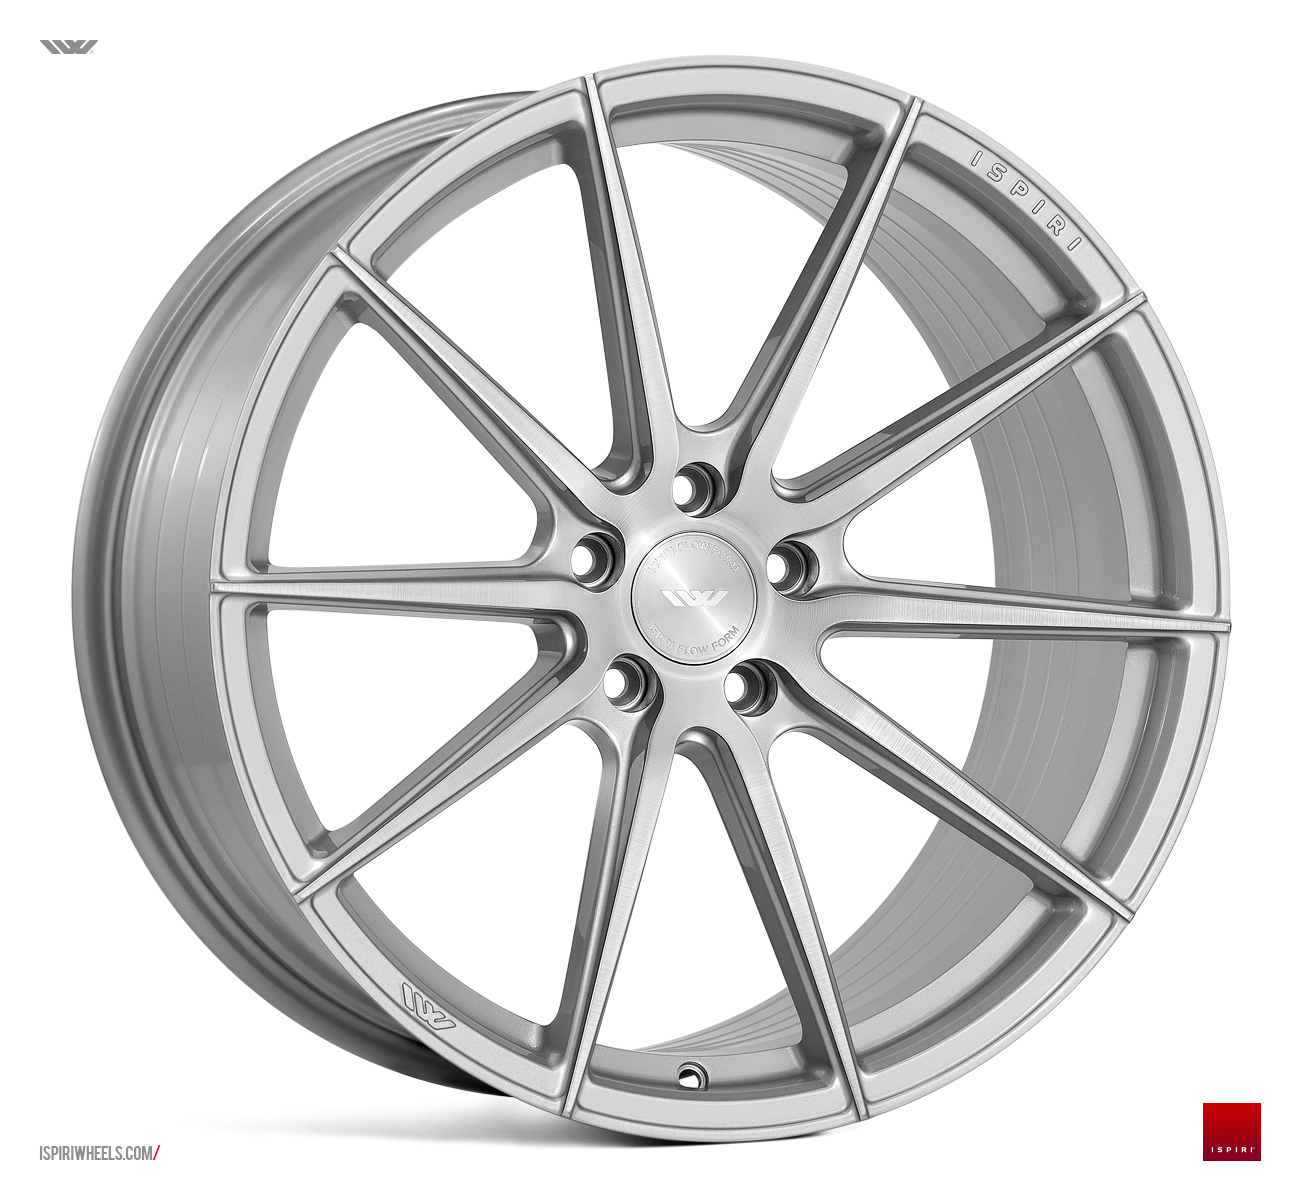 "NEW 19"" ISPIRI FFR1 MULTI-SPOKE ALLOY WHEELS IN PURE SILVER WITH BRUSHED POLISH FACE, DEEPER CONCAVE 9.5"" OR 10"" REARS - VARIOUS FITMENTS AVAILABLE"